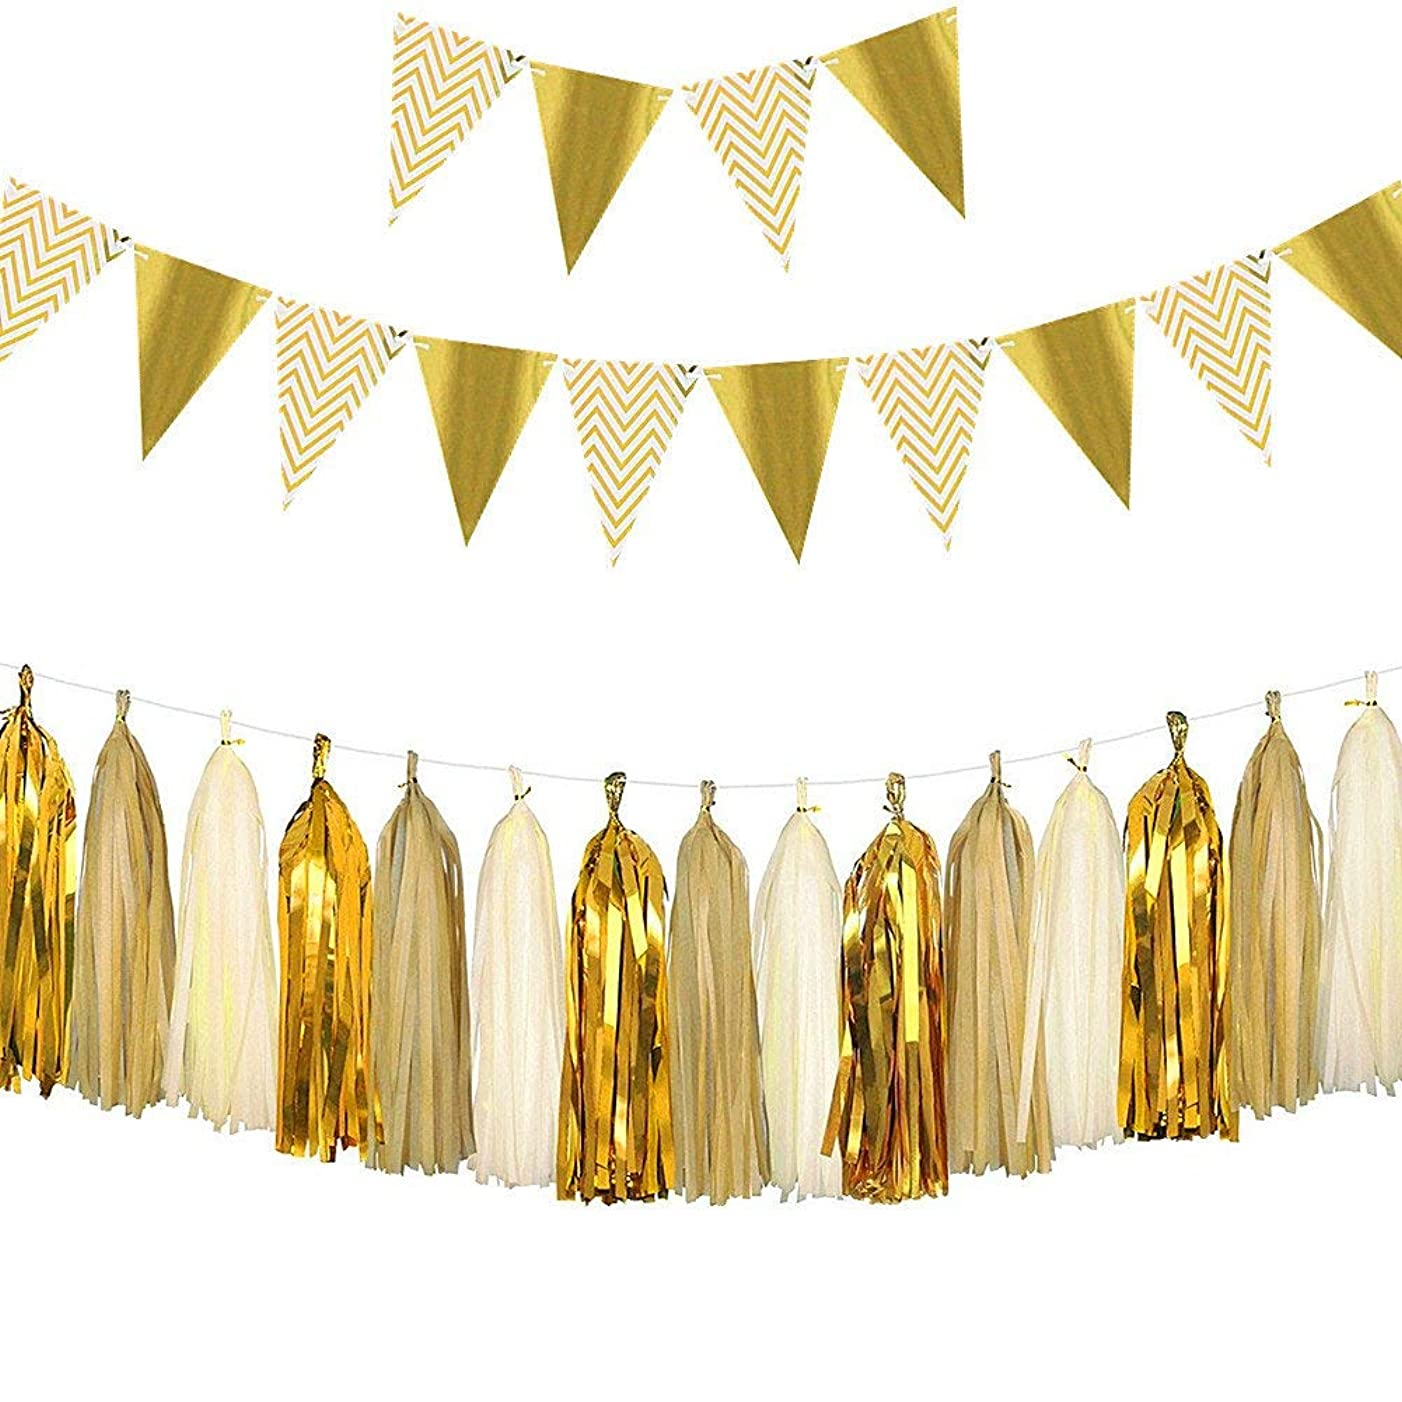 Sparkly Paper Pennant Banner Triangle Flags Bunting 8.2 Feet and Tissue Paper Tassels Garland 15 pcs for Baby Shower, Decorations Set for Birthday Party, Metallic Gold